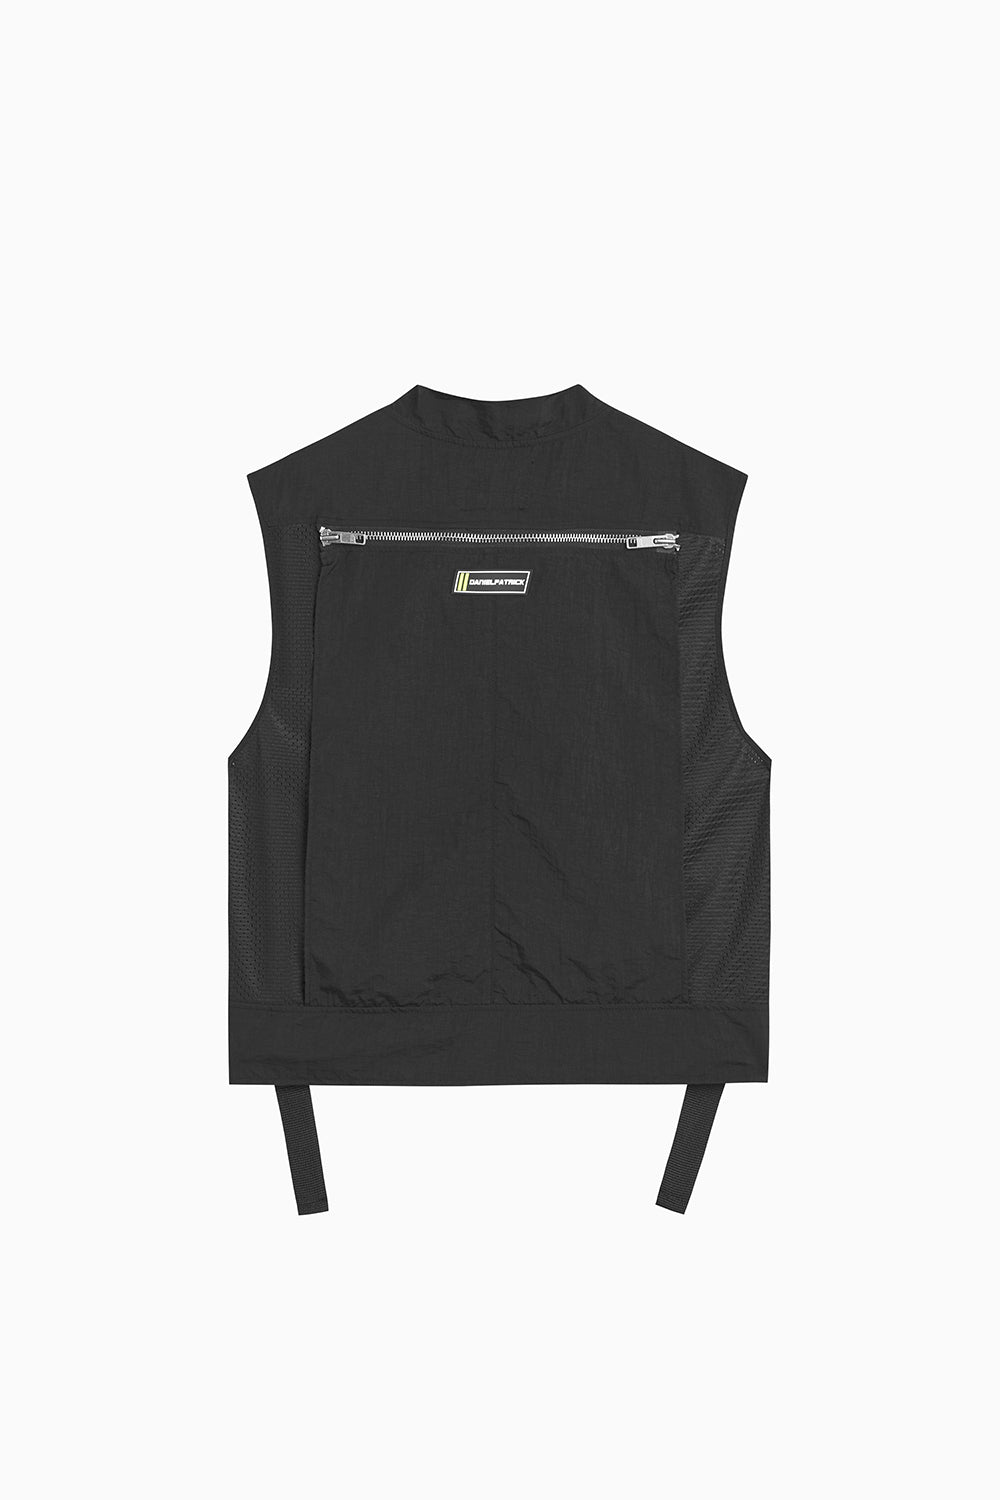 cargo outdoors vest / black